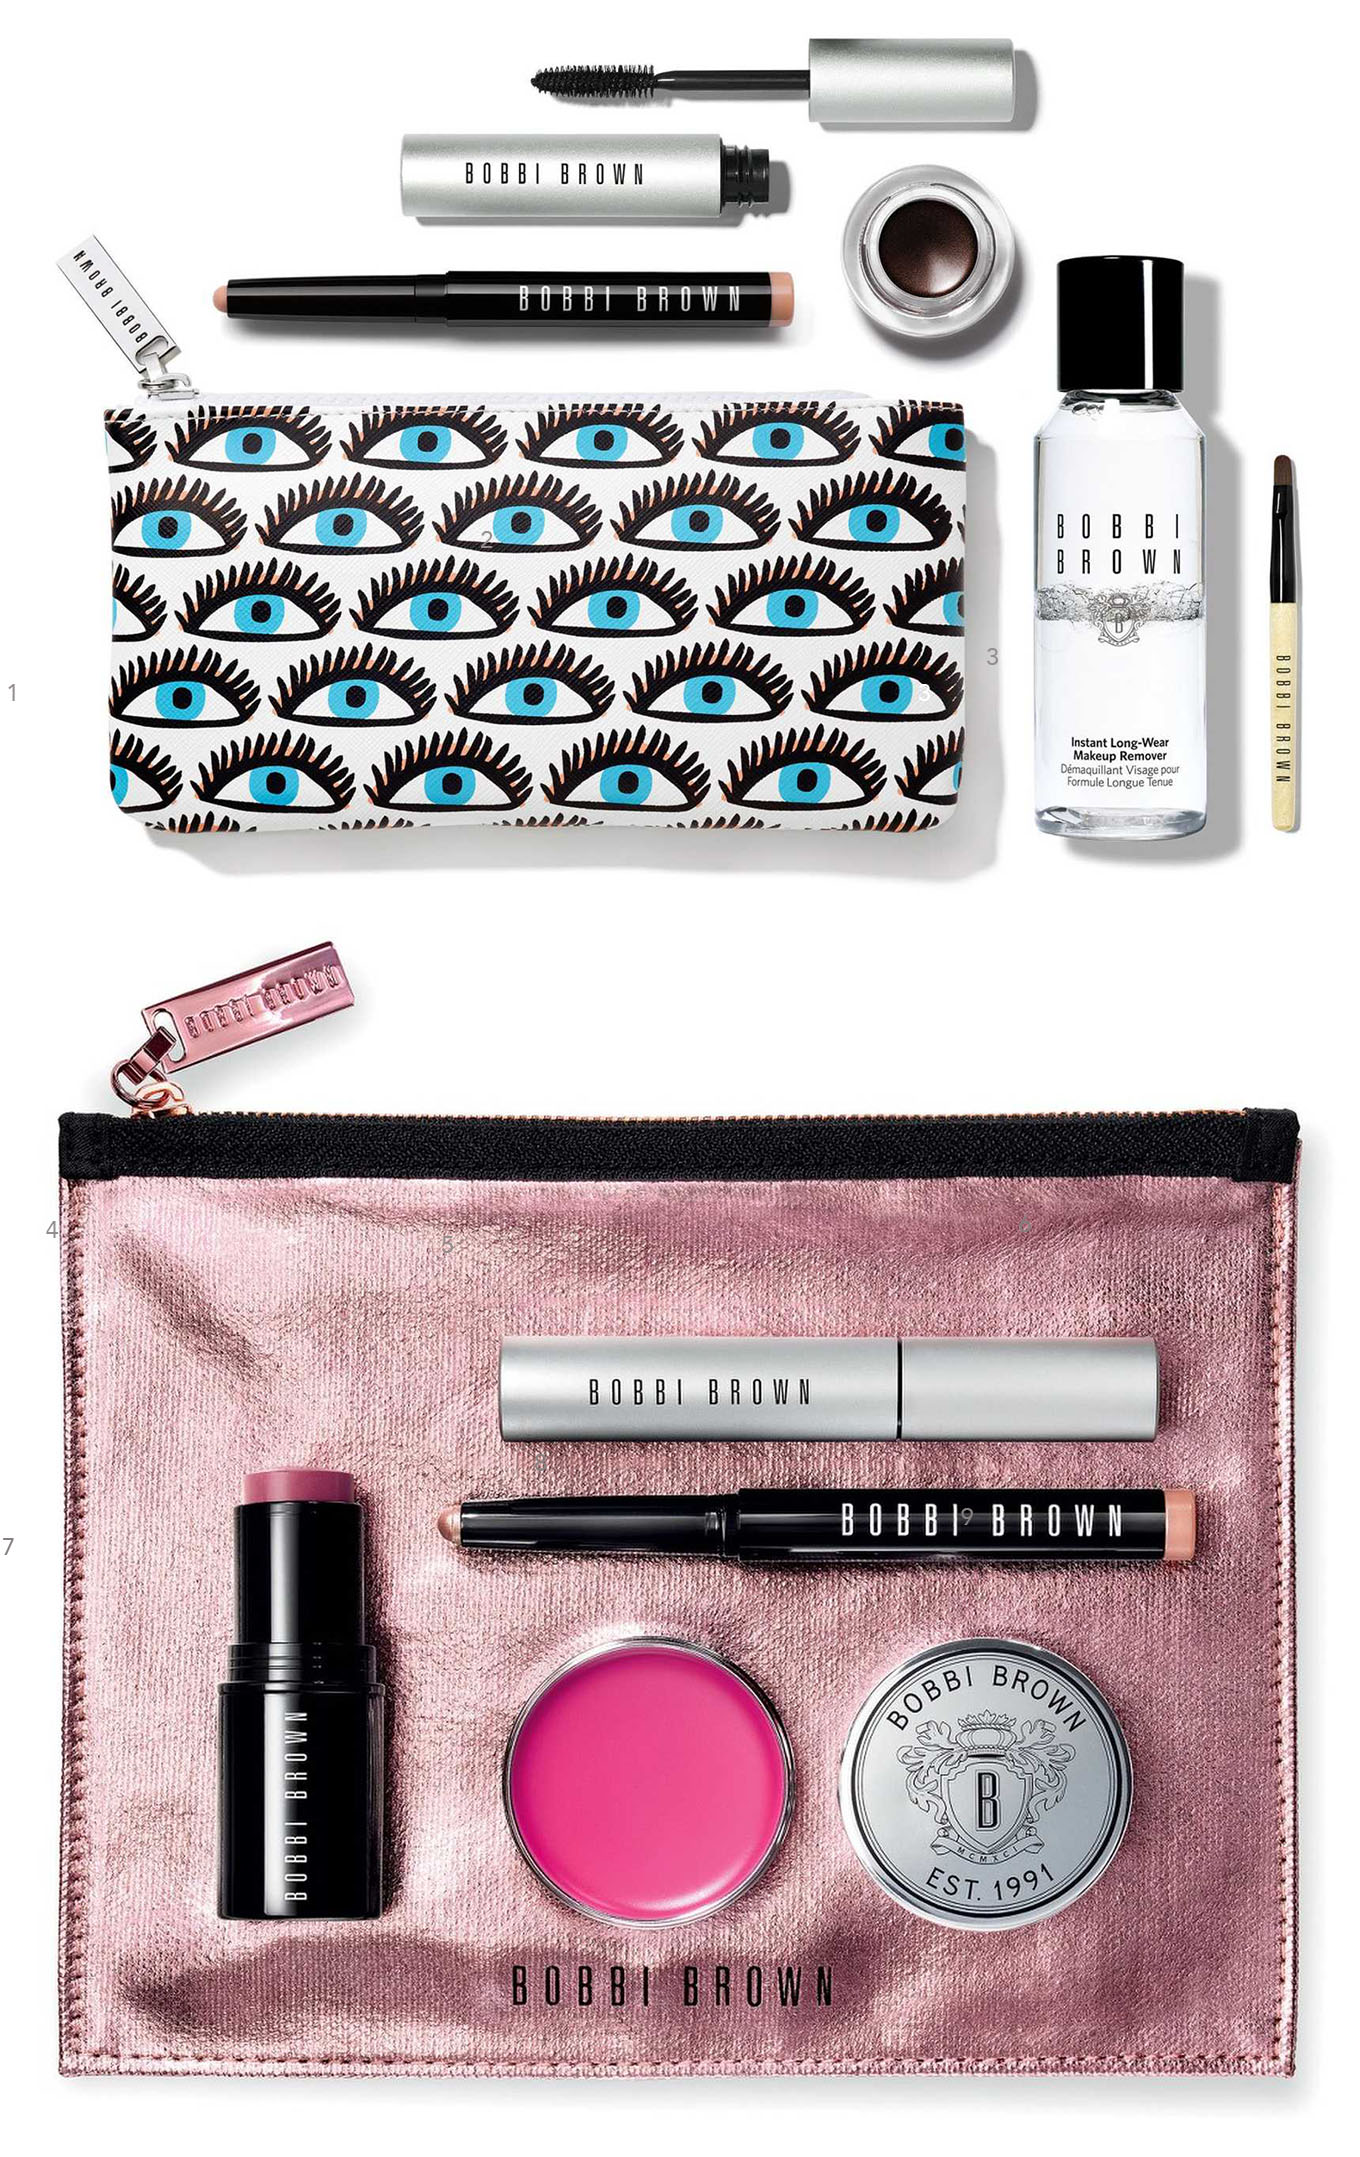 Ridgely Brode loves to try out the travel size beauty sets that come as a gift with purchase and shares a few on her blog, Ridgely's Radar.